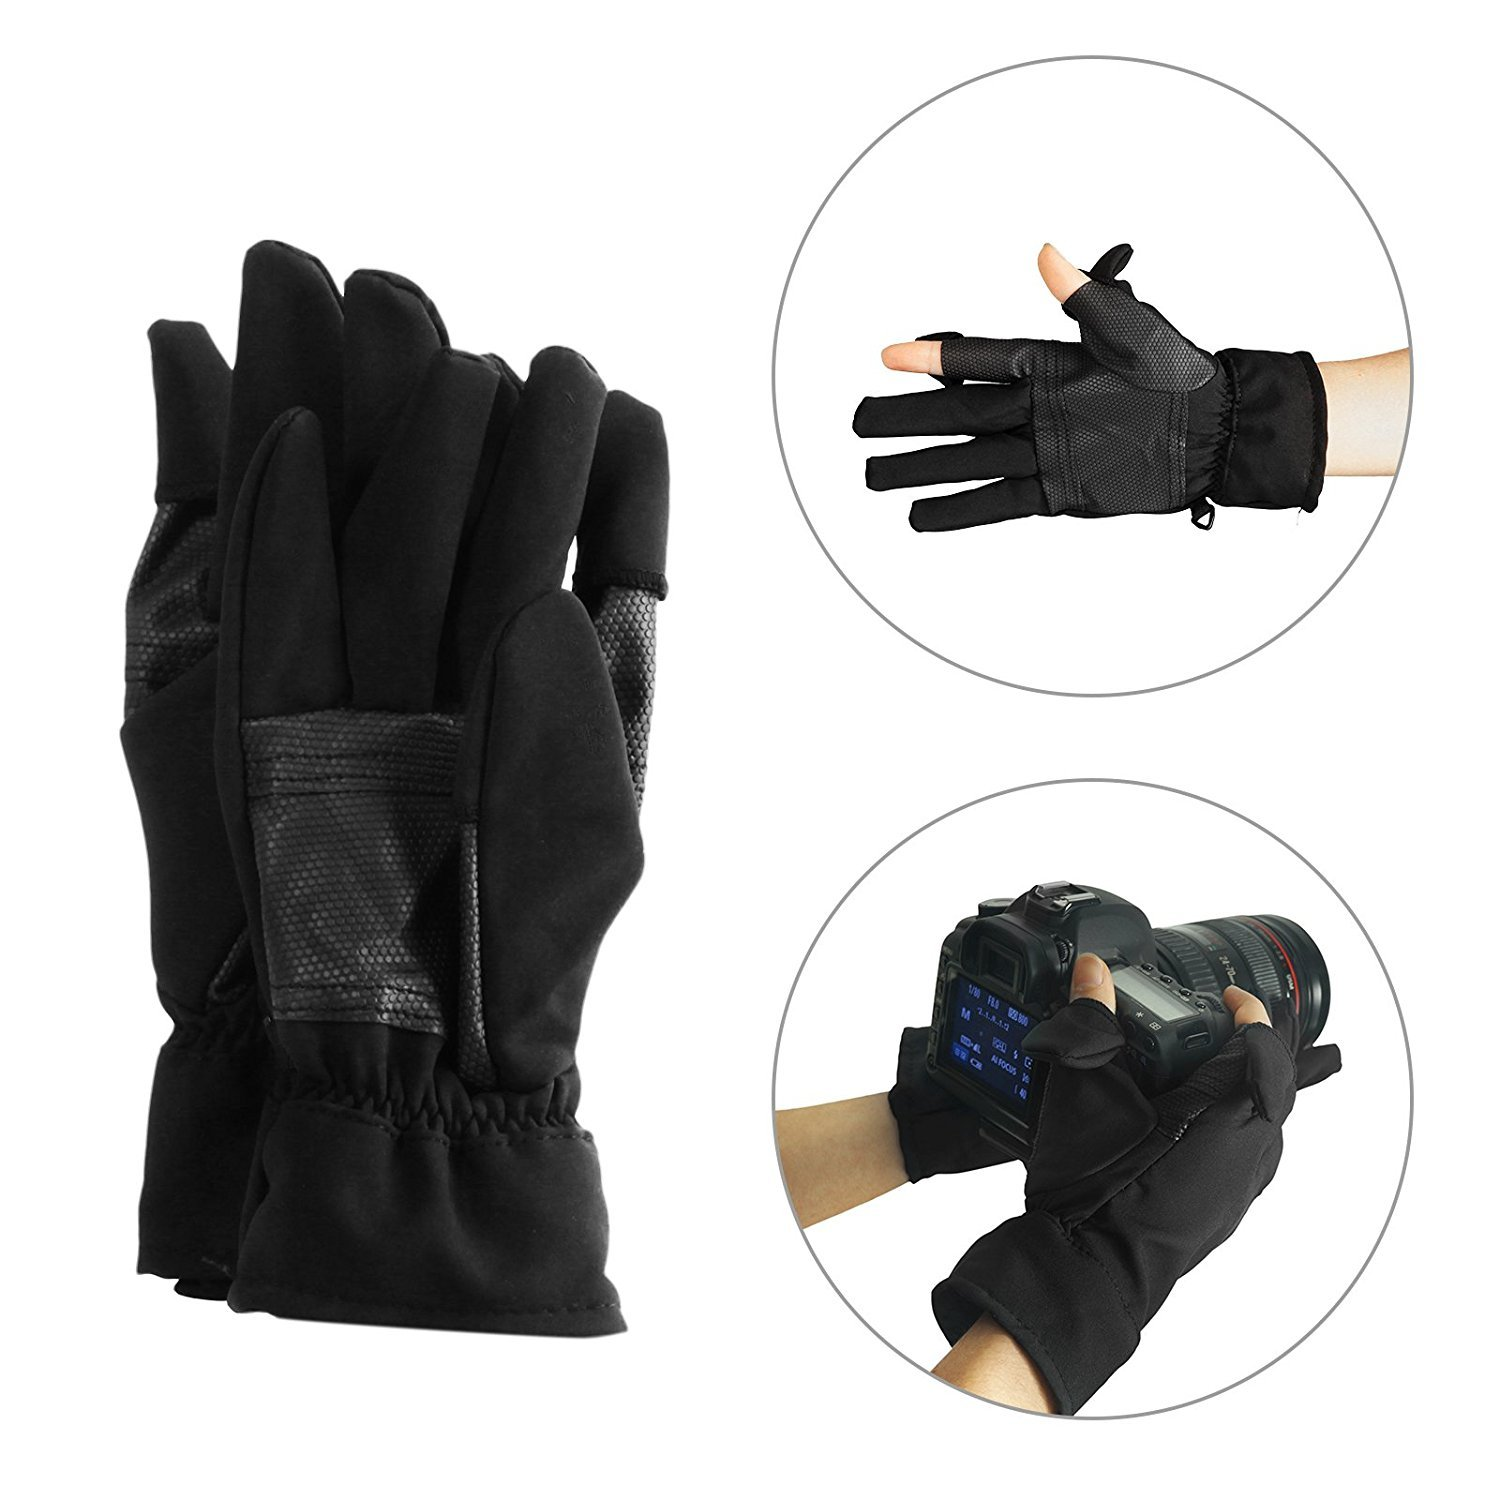 gifts for photographers under 10 dollars gloves